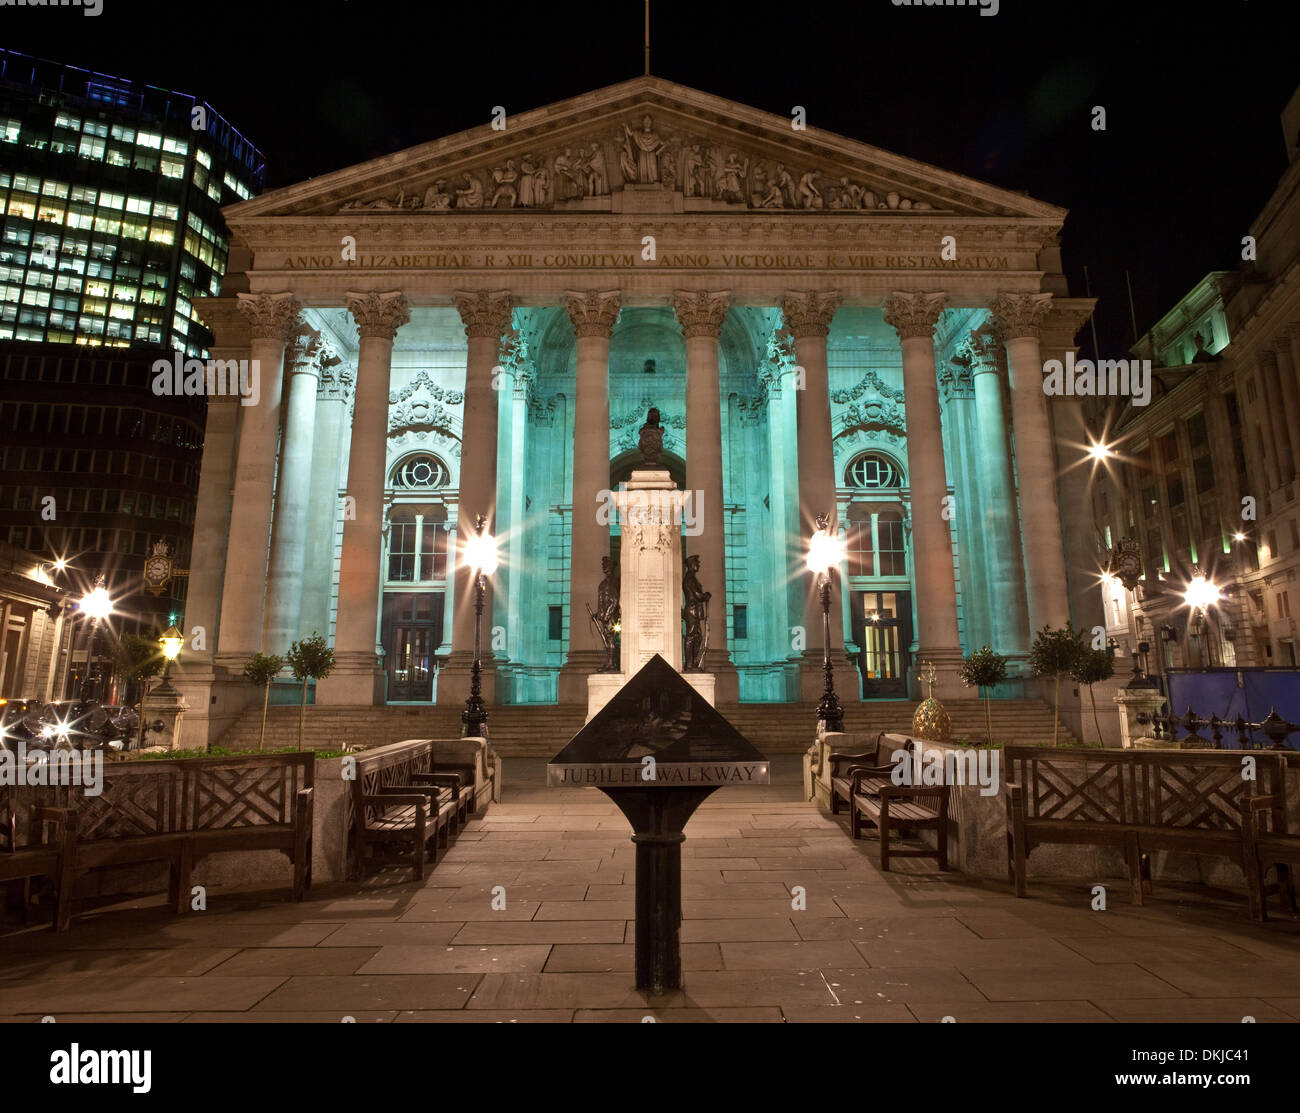 The Royal Exchange in London. - Stock Image